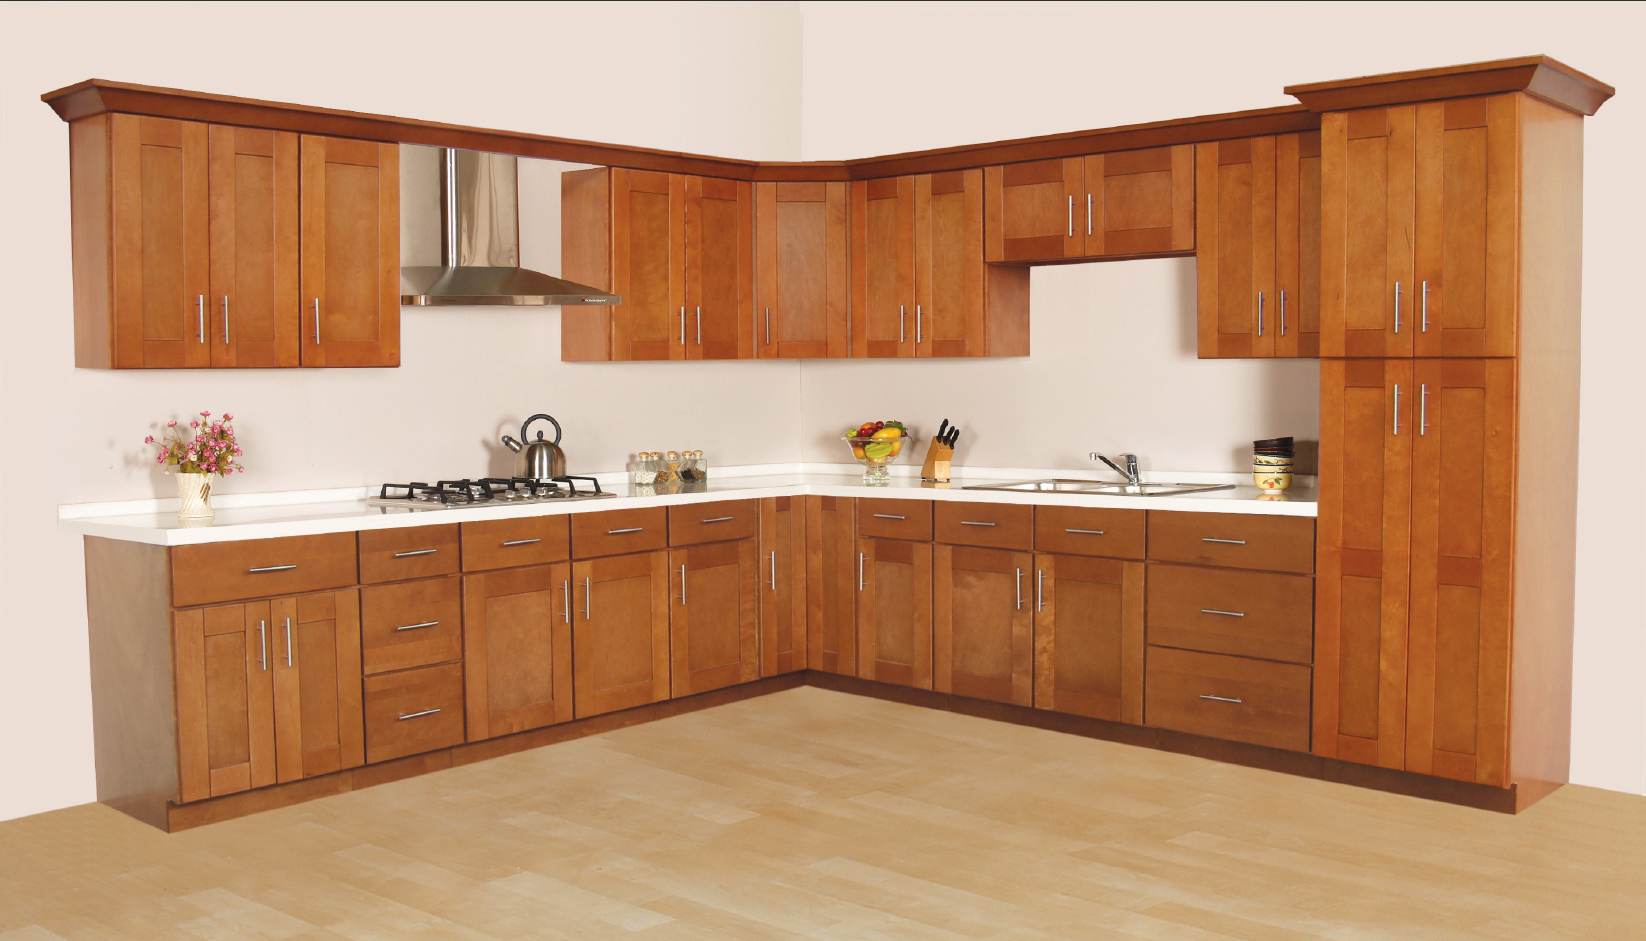 Contemporary ... homely idea kitchen cupboard 9 modern concept kitchen cupboard cabinets  cabinet uklyzls